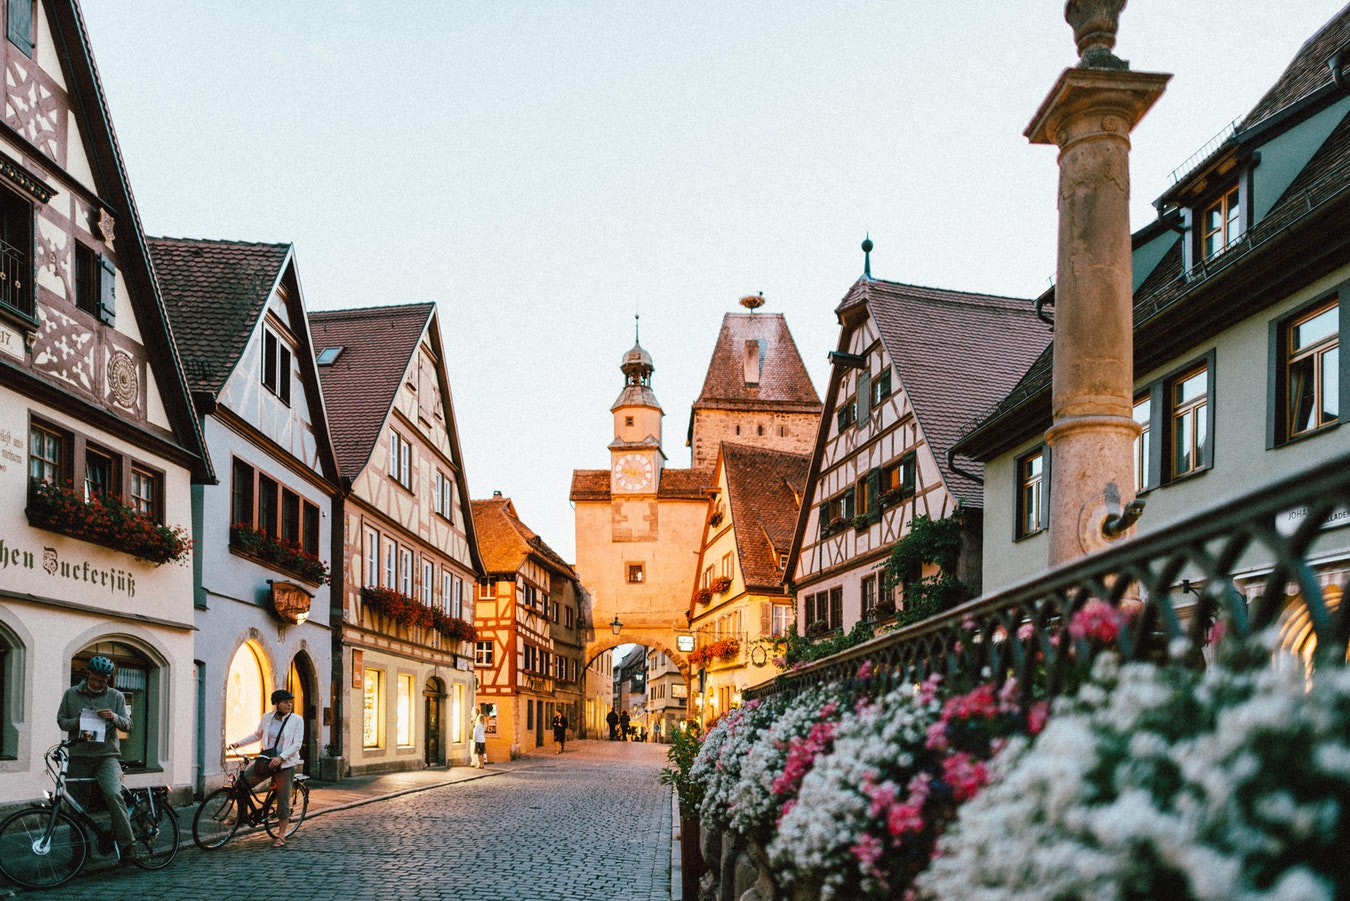 A couple on bicycles in Rothenburg, Germany.